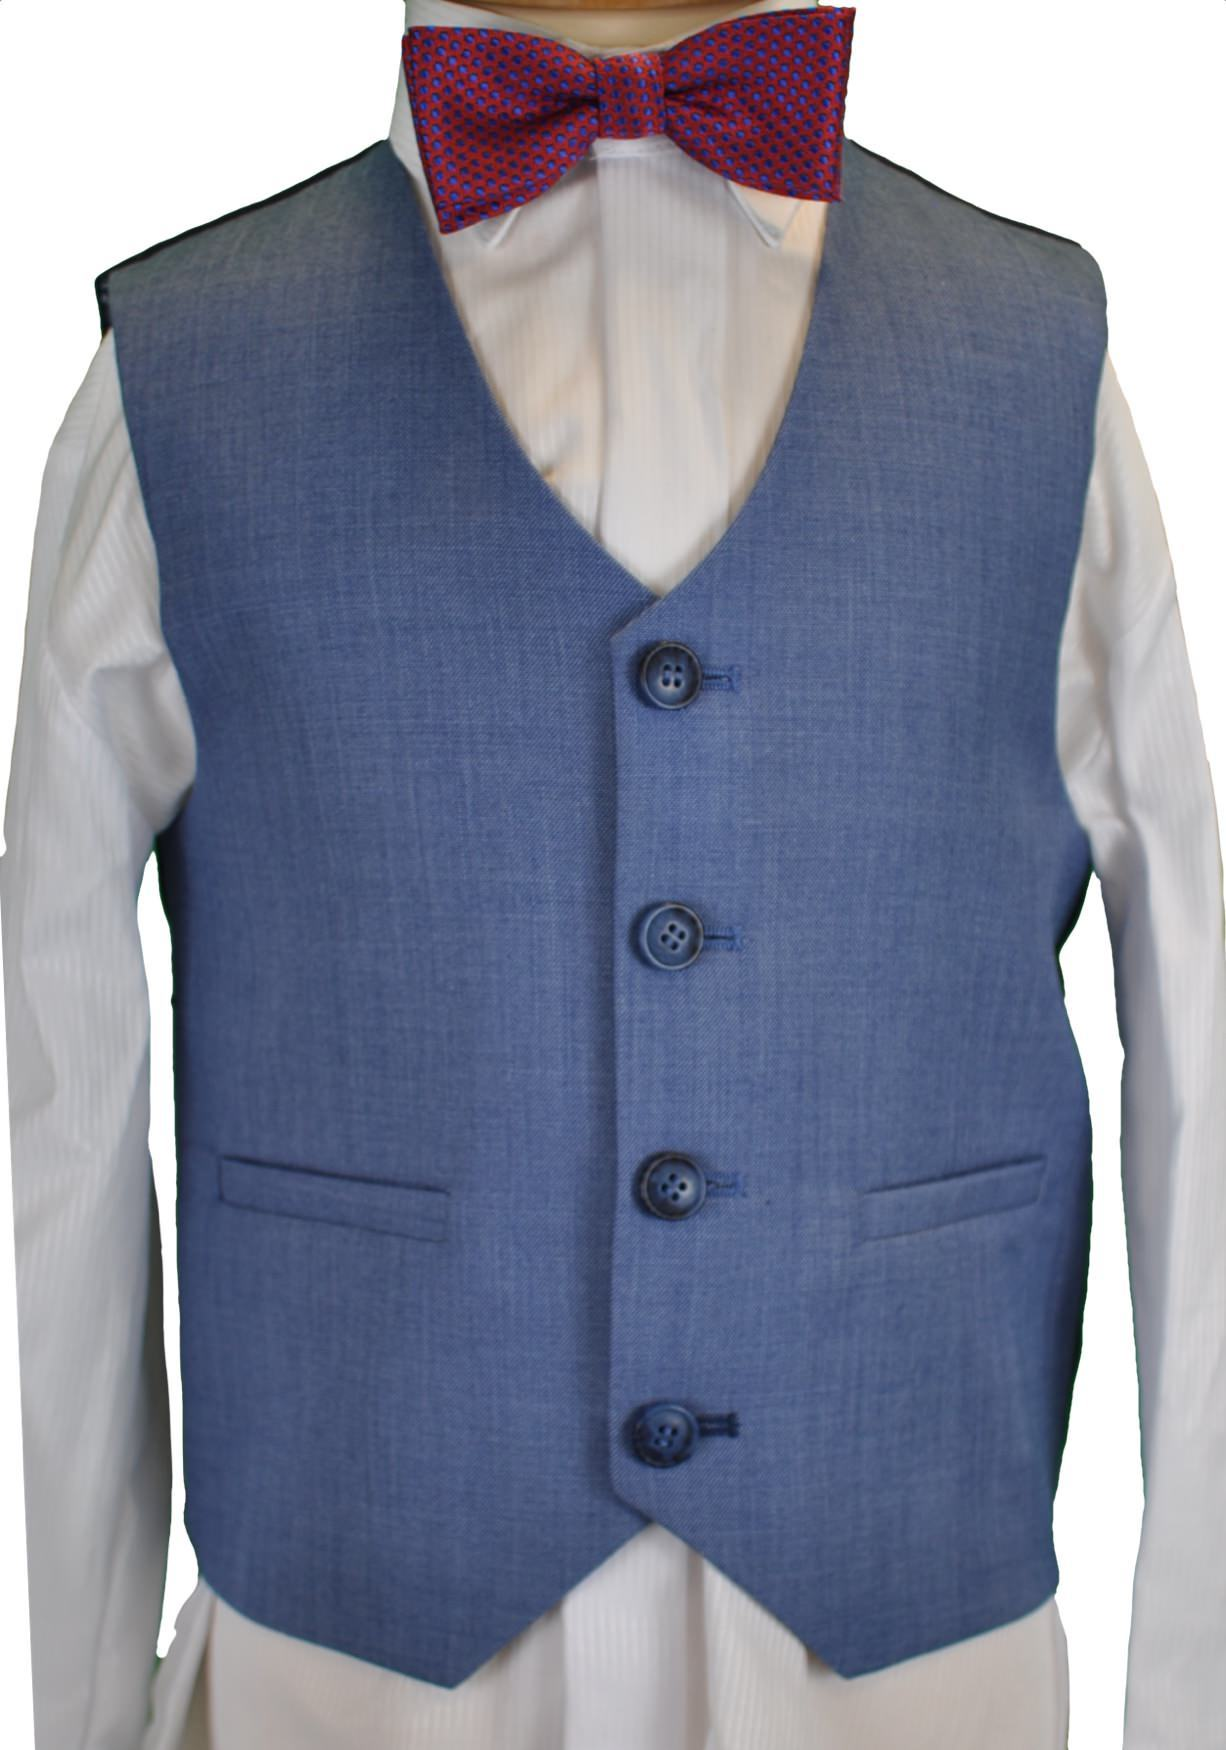 Boys Blue Jay 3pc Suit | Boys Suits & Blazers | Suits District